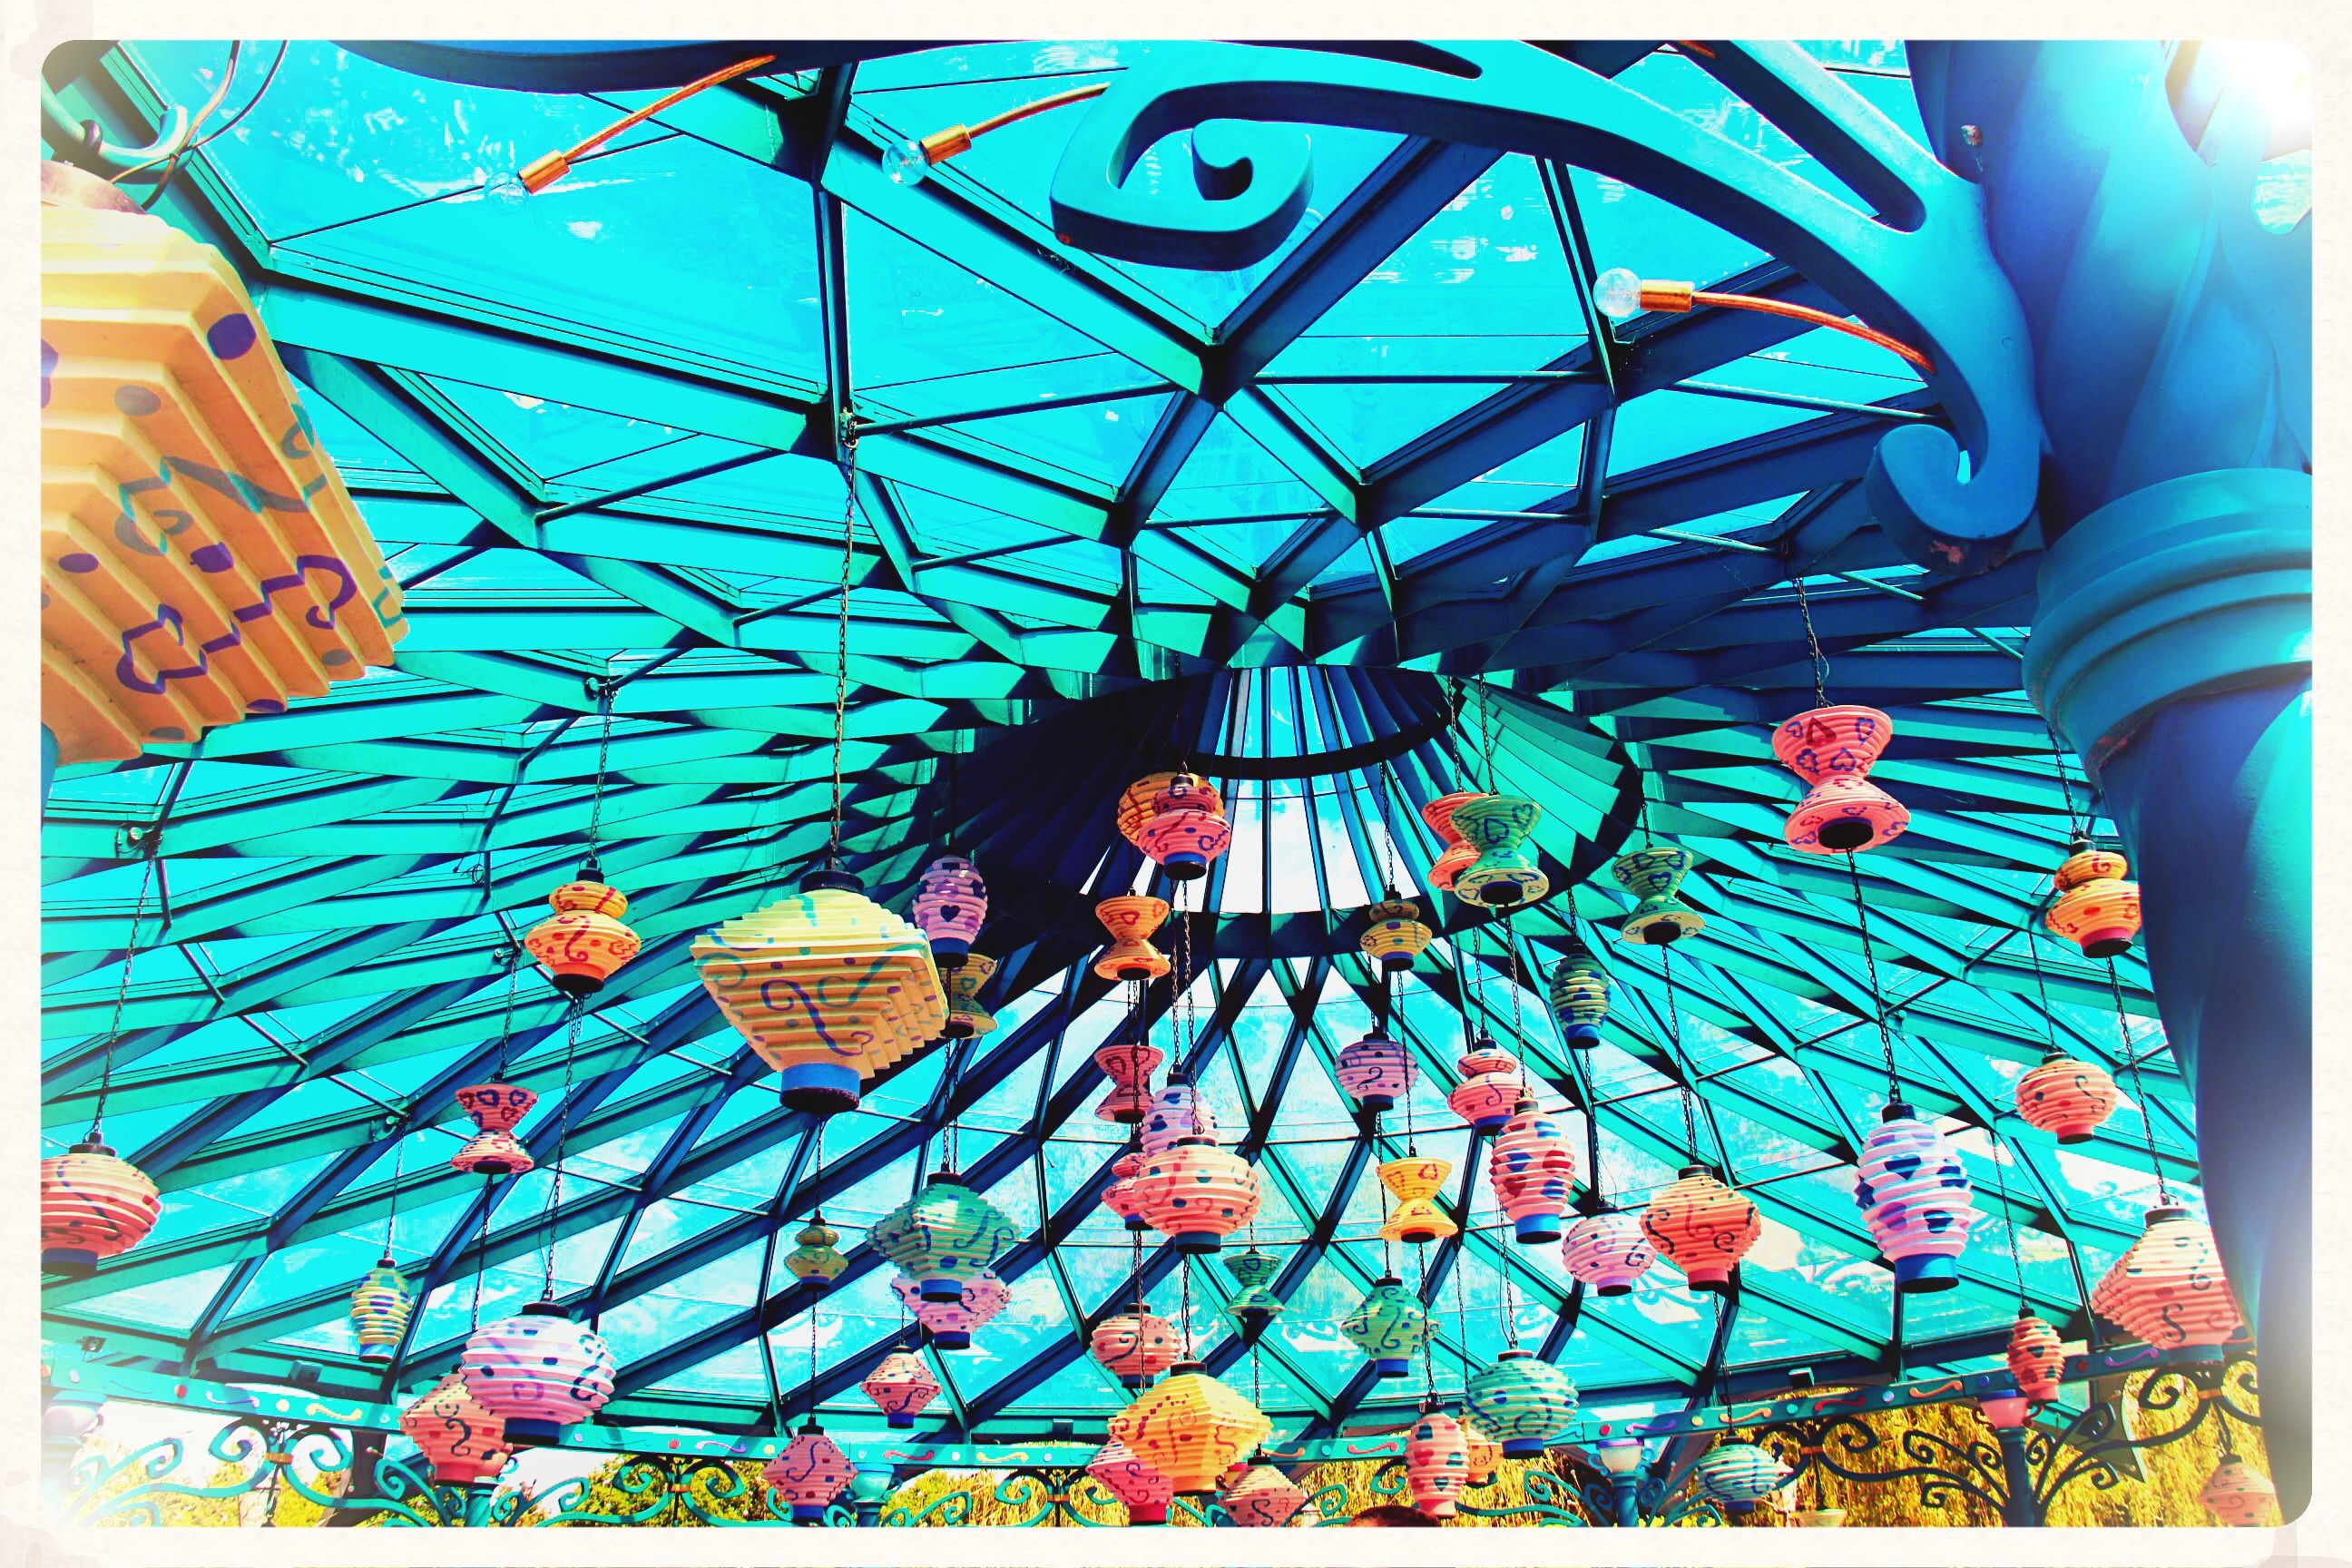 I love the roof decor in the teacups ride. Alice in wonderland heaven